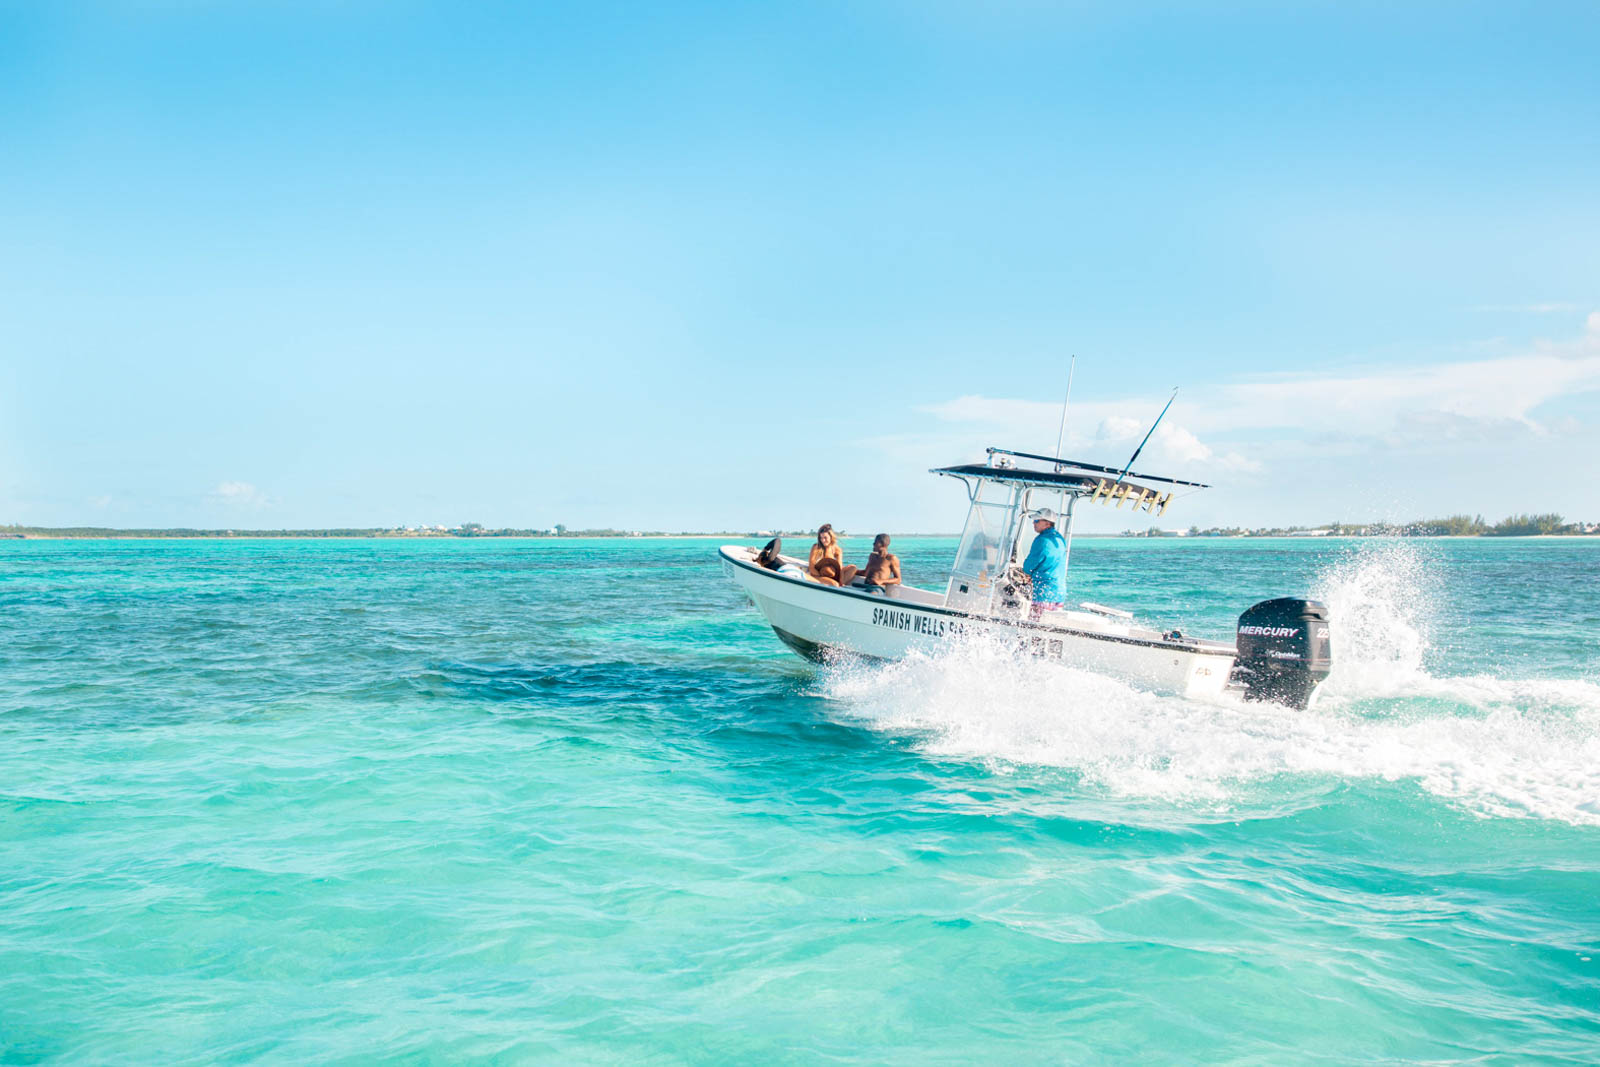 Take a boat out on the turquoise waters of the Exumas. Looking for what to do in the Bahamas? Read this guide for more things to do in the Bahamas.